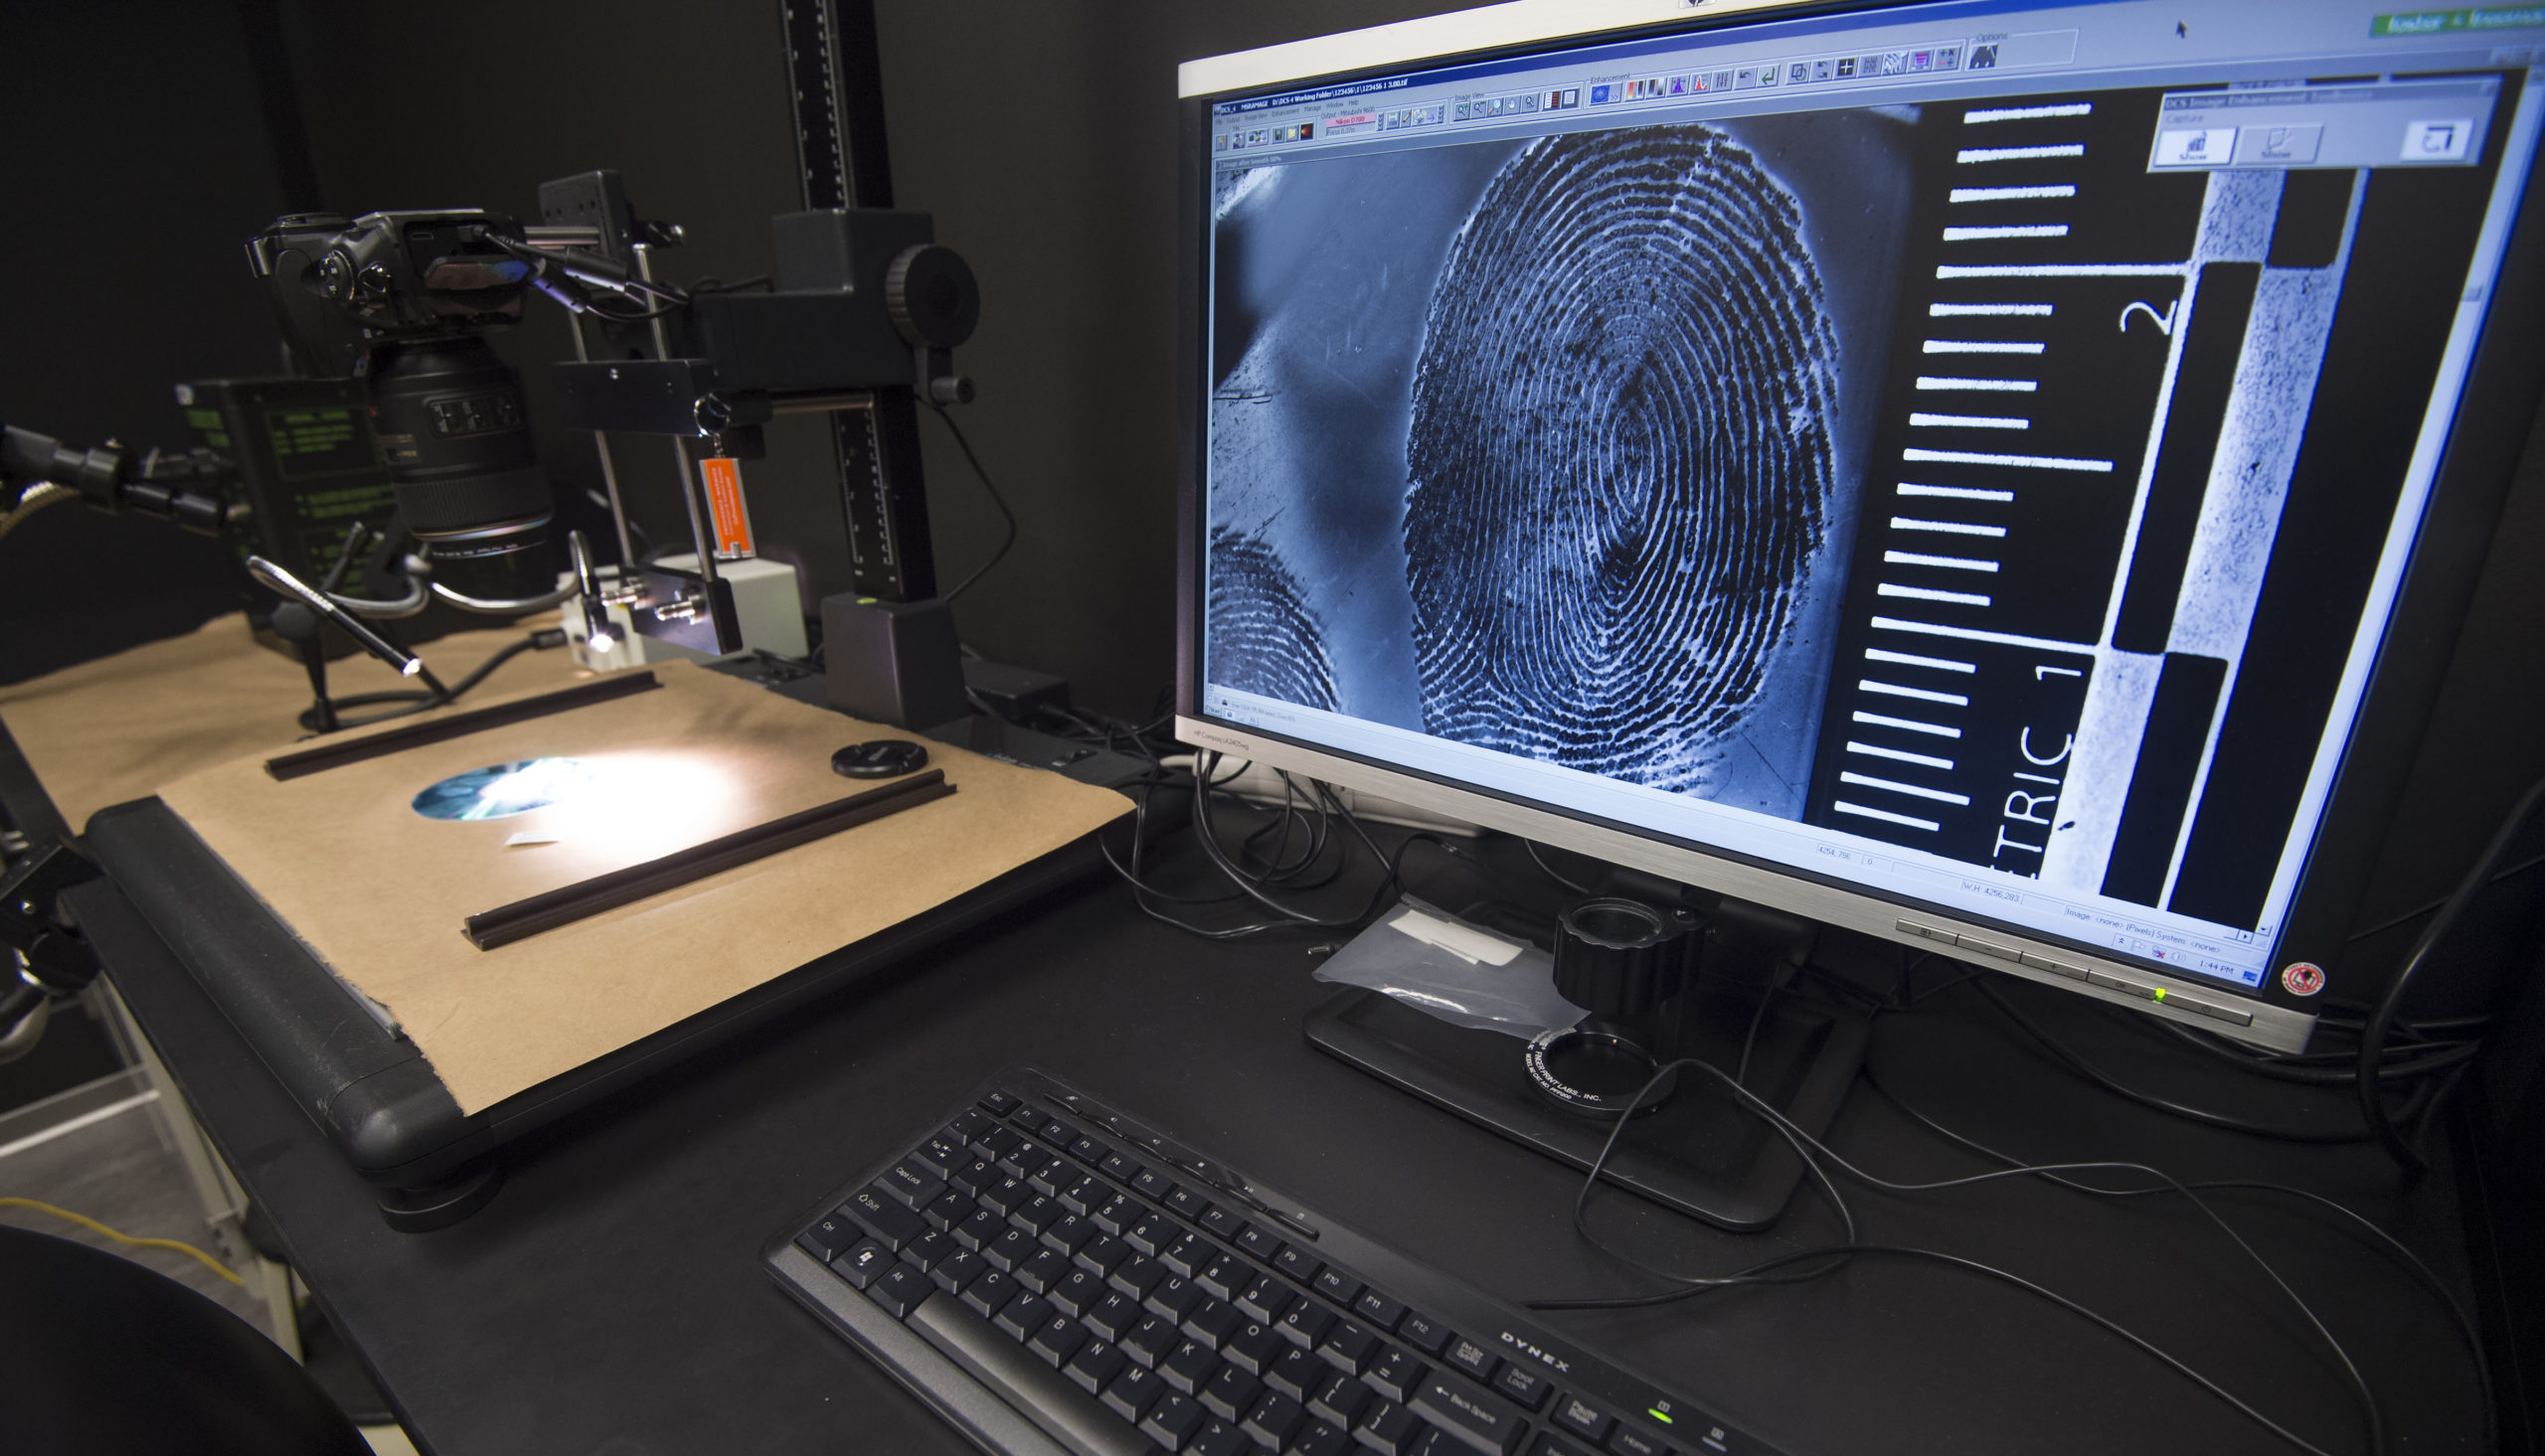 A fingerprint is enlarged for examination in the Latent Print Lab at the US Homeland Security Investigation Forensic Laboratory in Tyson Corner, Virginia on July 20, 2016. The 40,000-sq-foot laboratory is forensics, research, and training facility for the verification of travel and identity documents. / AFP / PAUL J. RICHARDS (Photo credit should read PAUL J. RICHARDS/AFP via Getty Images)